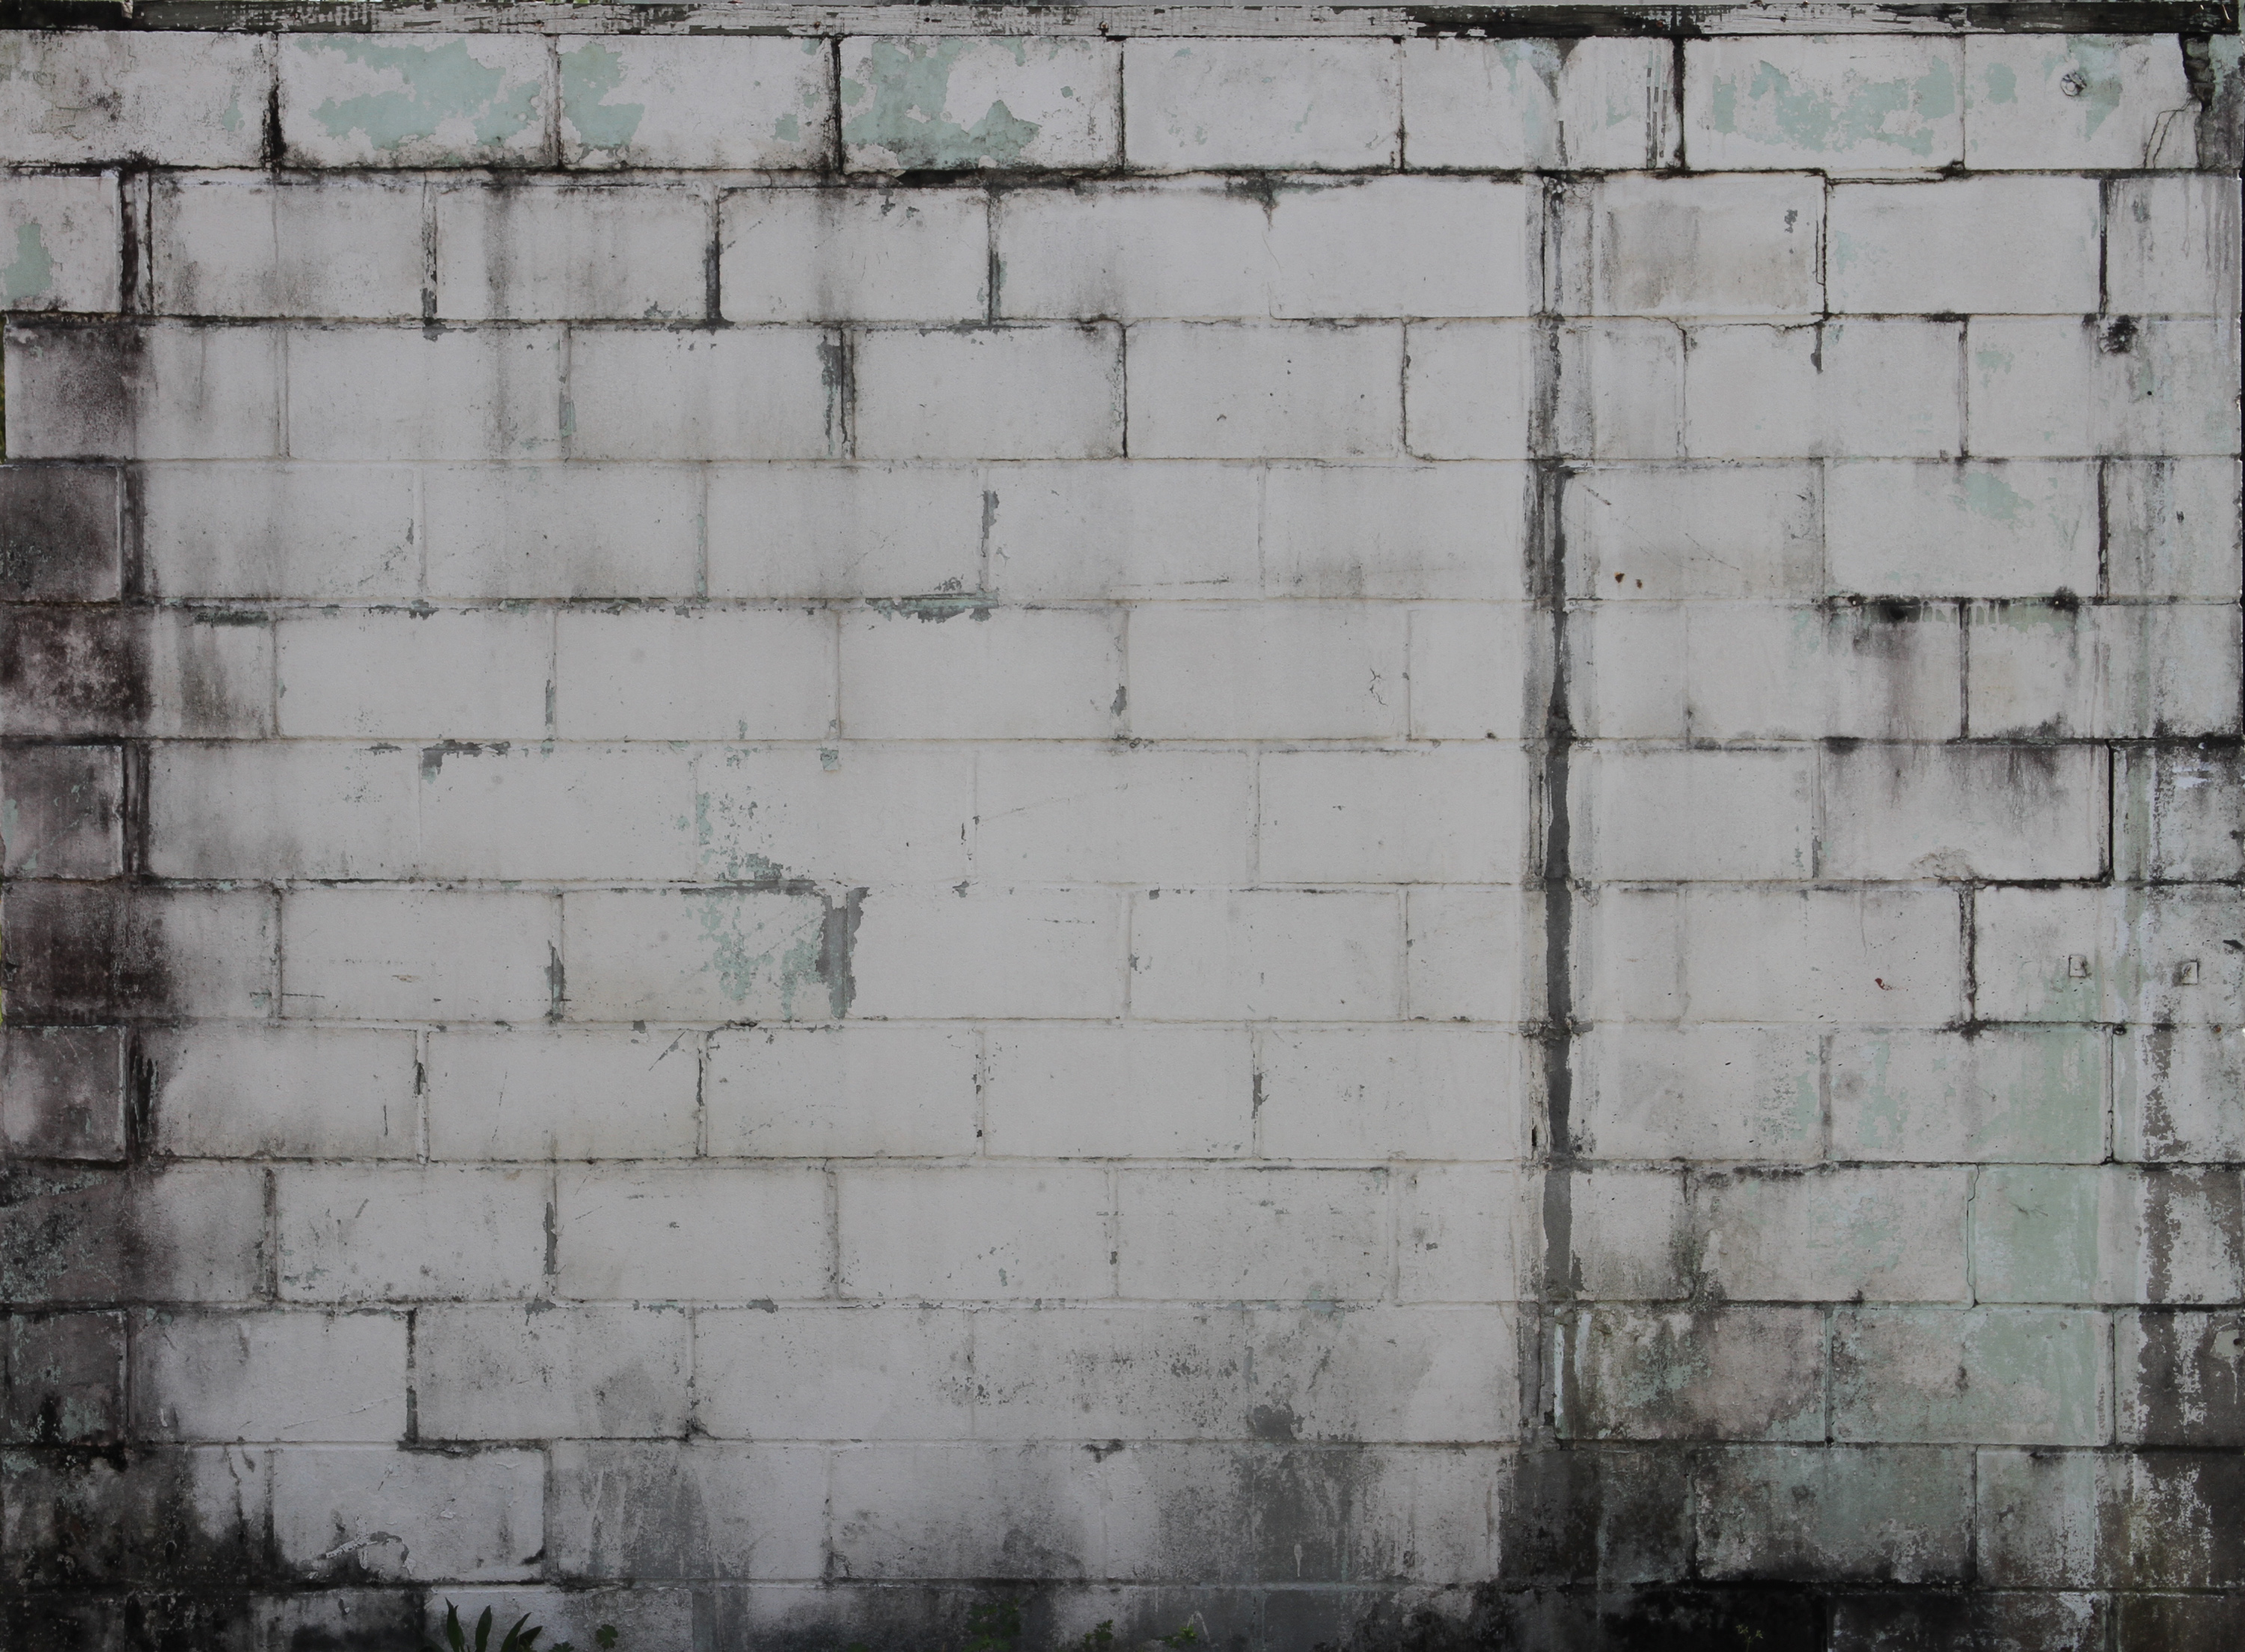 Grungy White Wall Texture - 14Textures